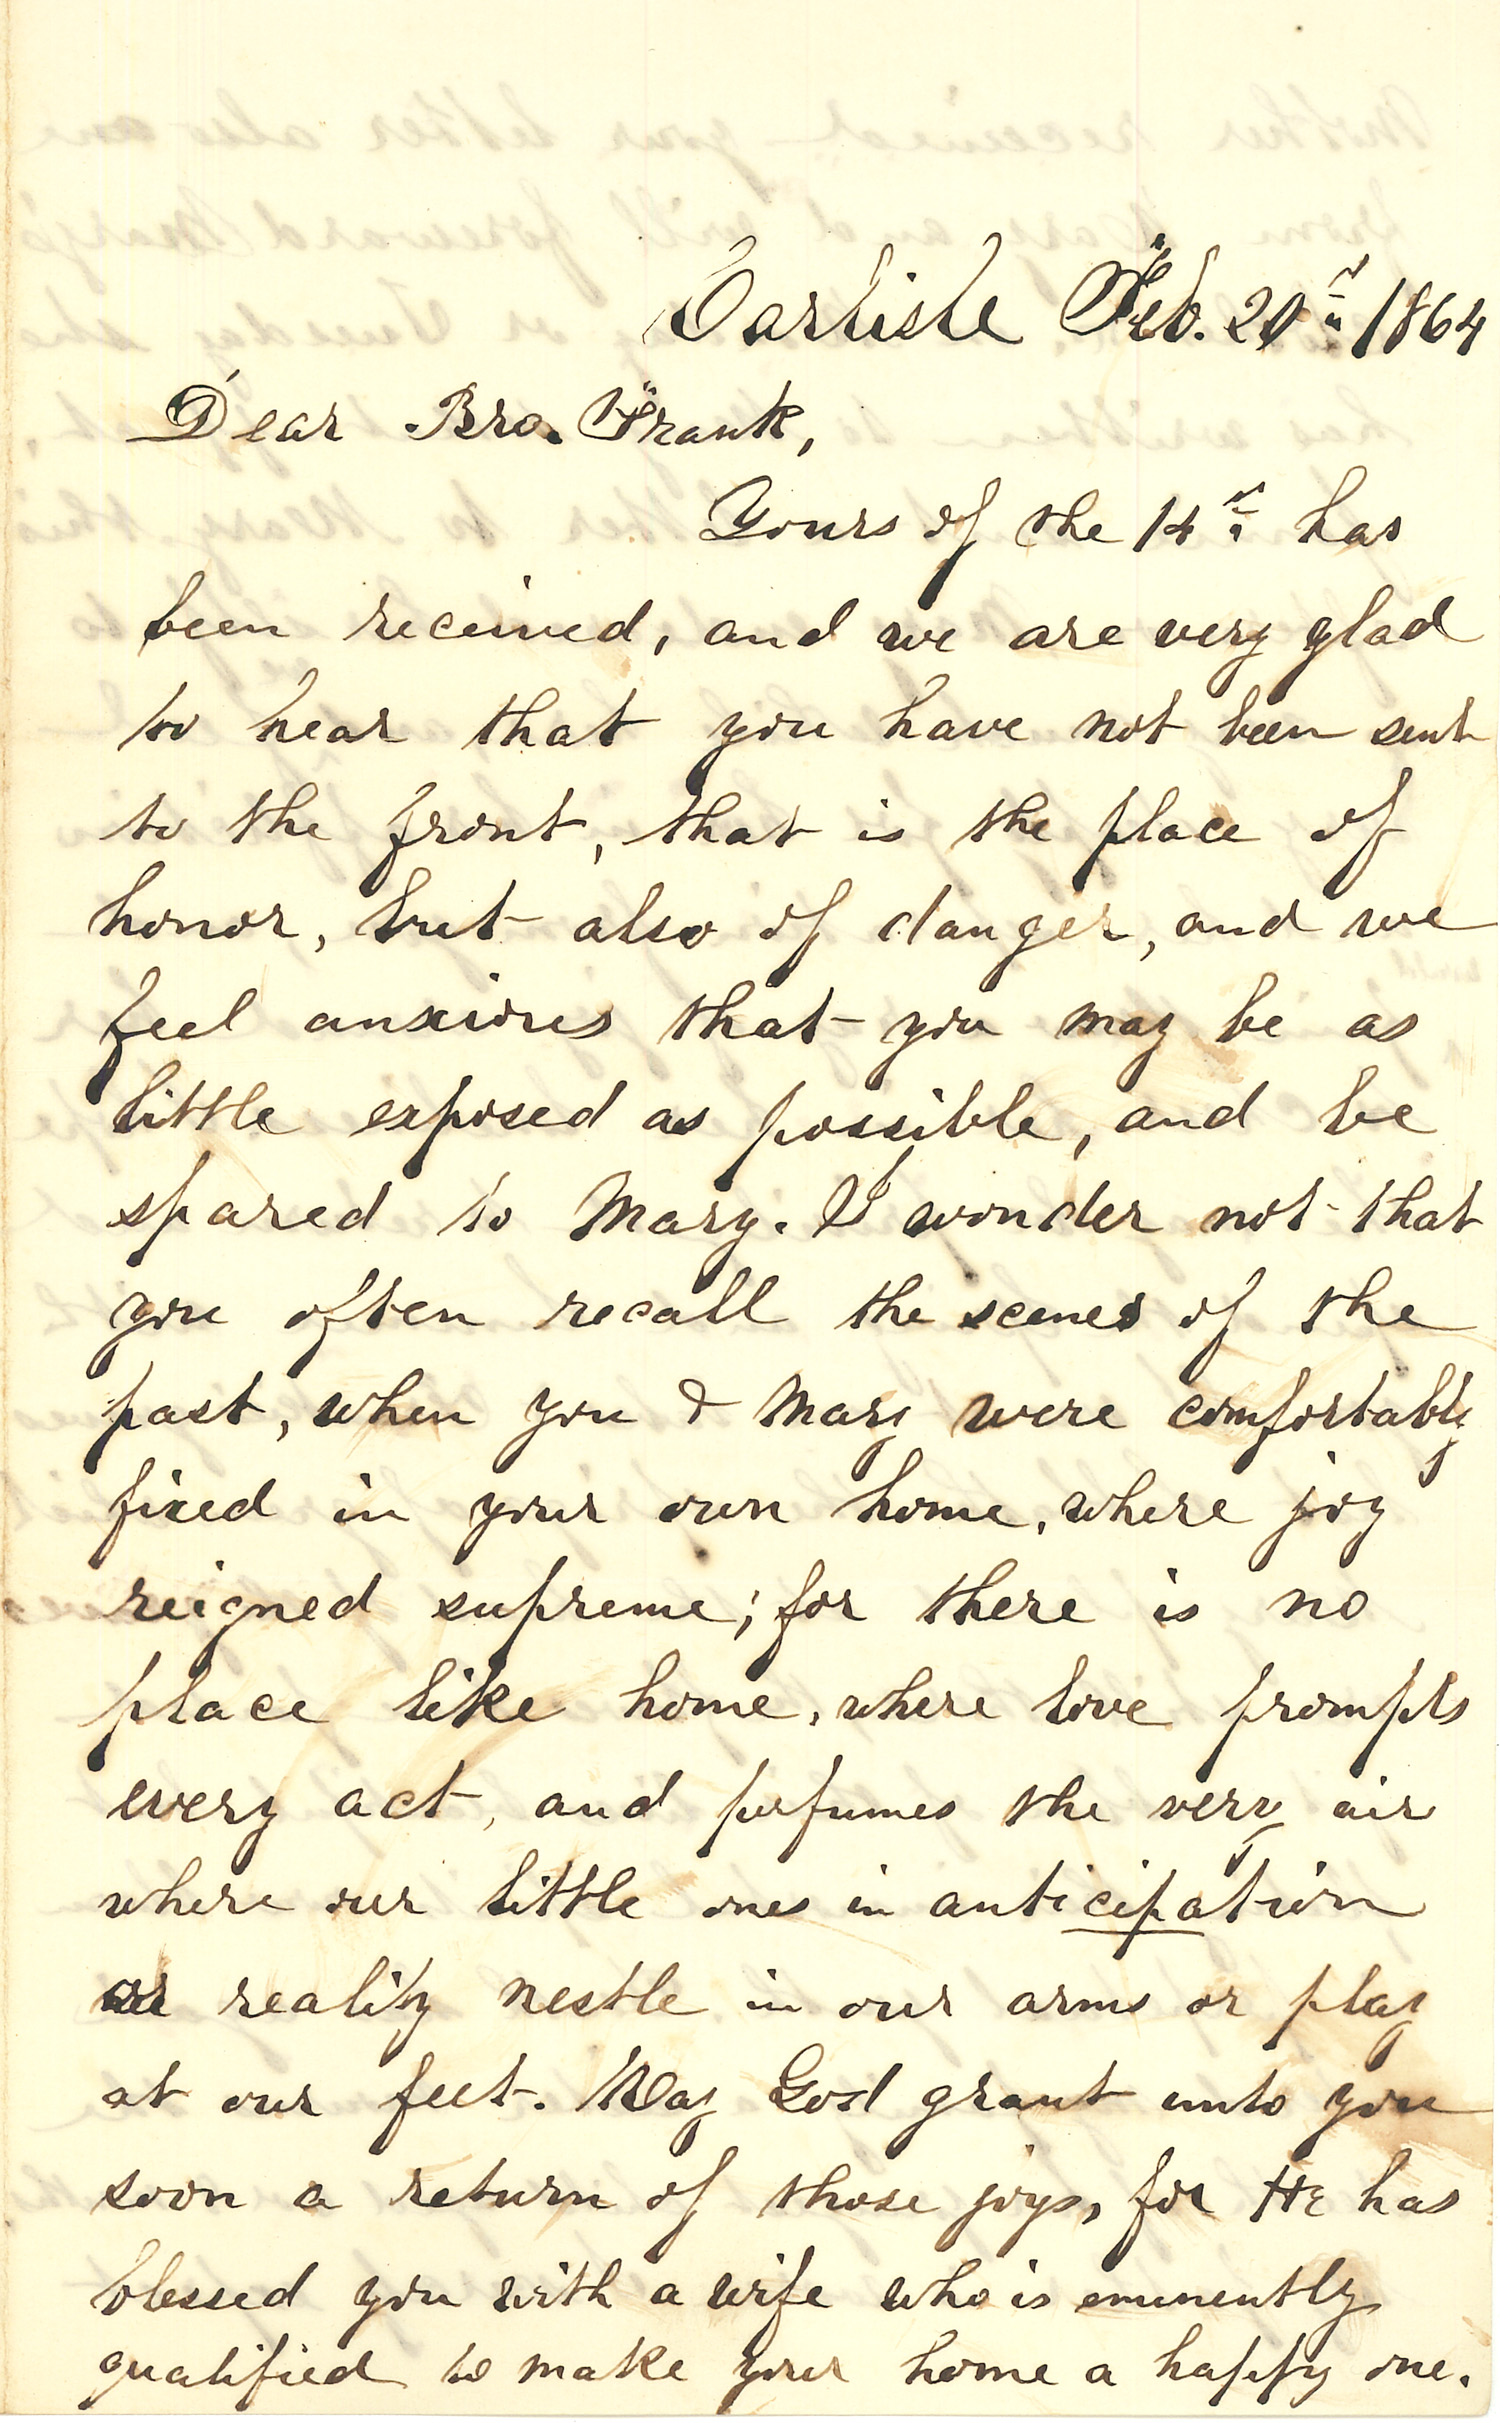 Joseph Culver Letter, February 20, 1864, Page 1